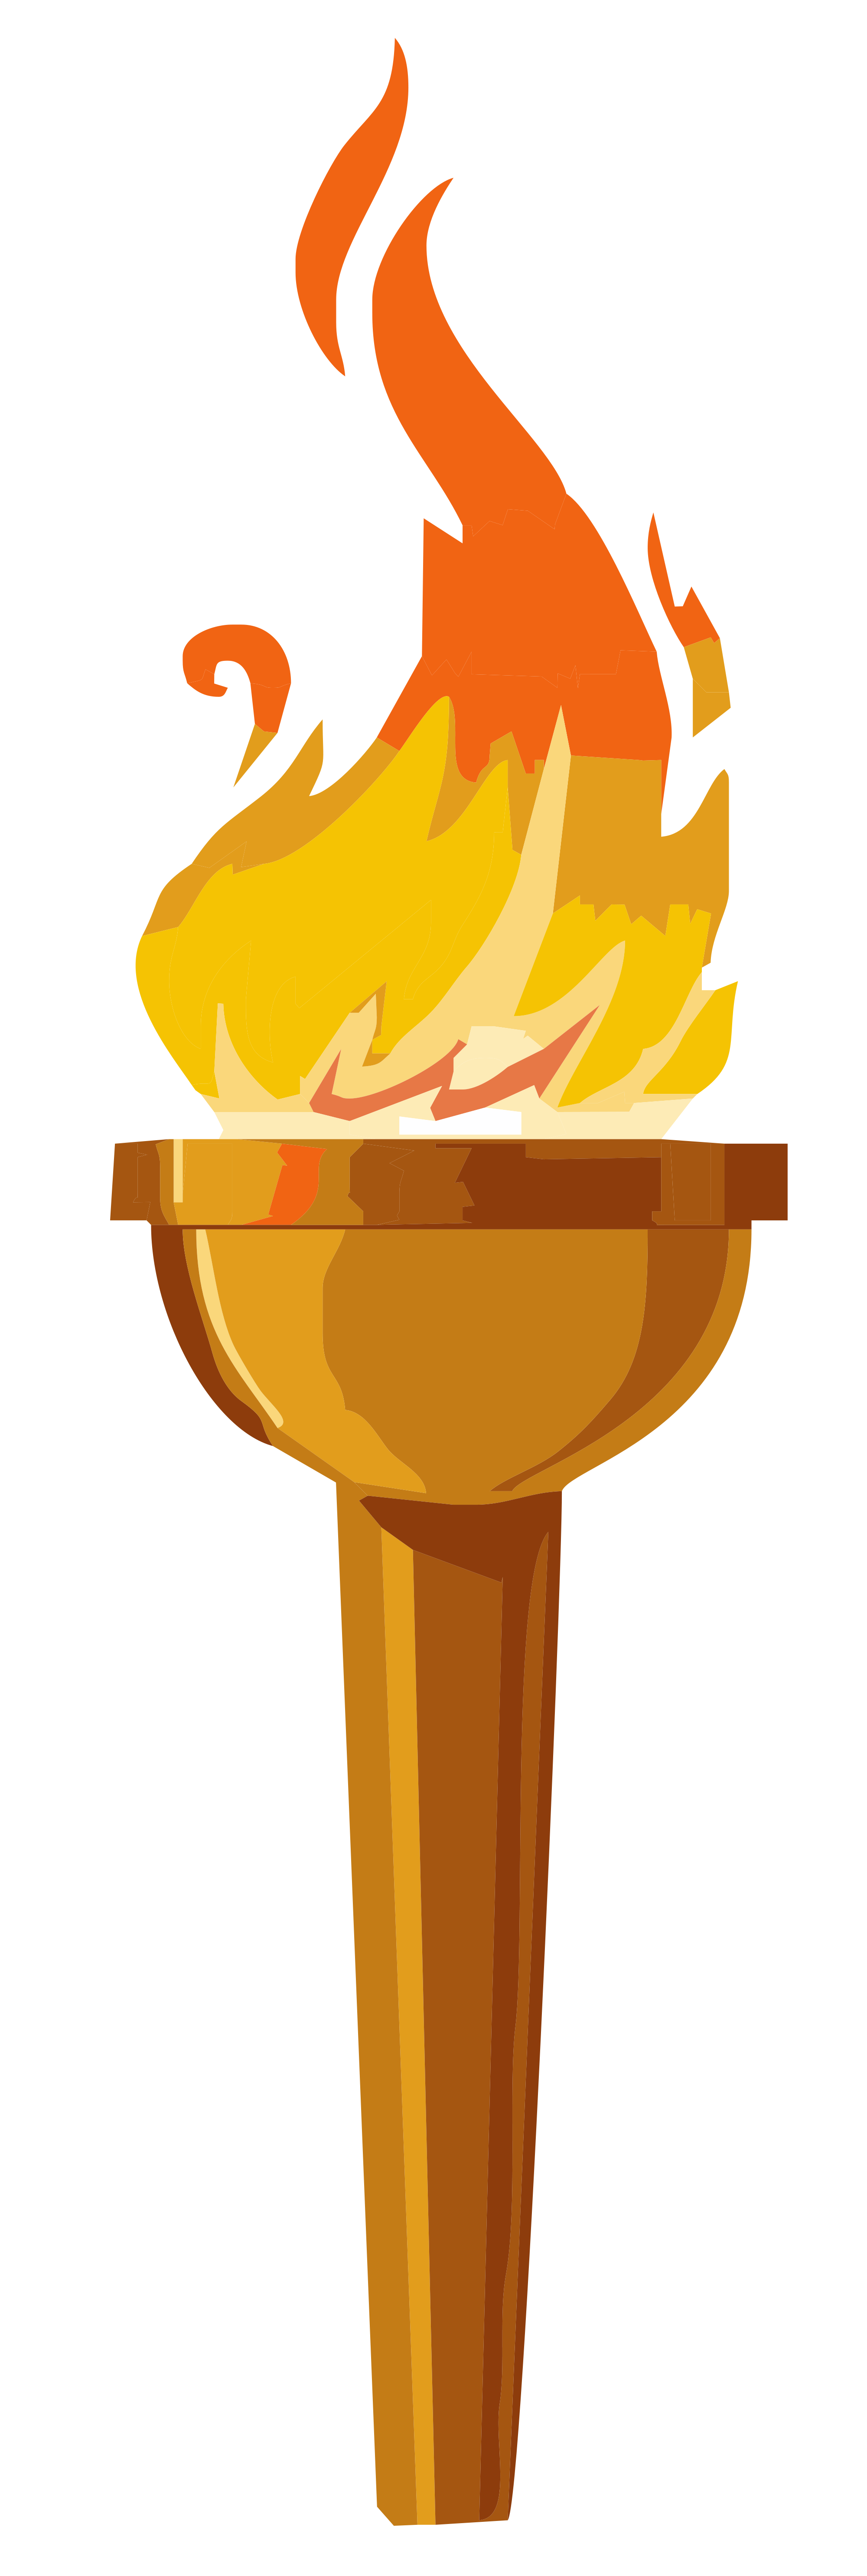 Torch clipart torch flame Pie Torch Torch Vectors &